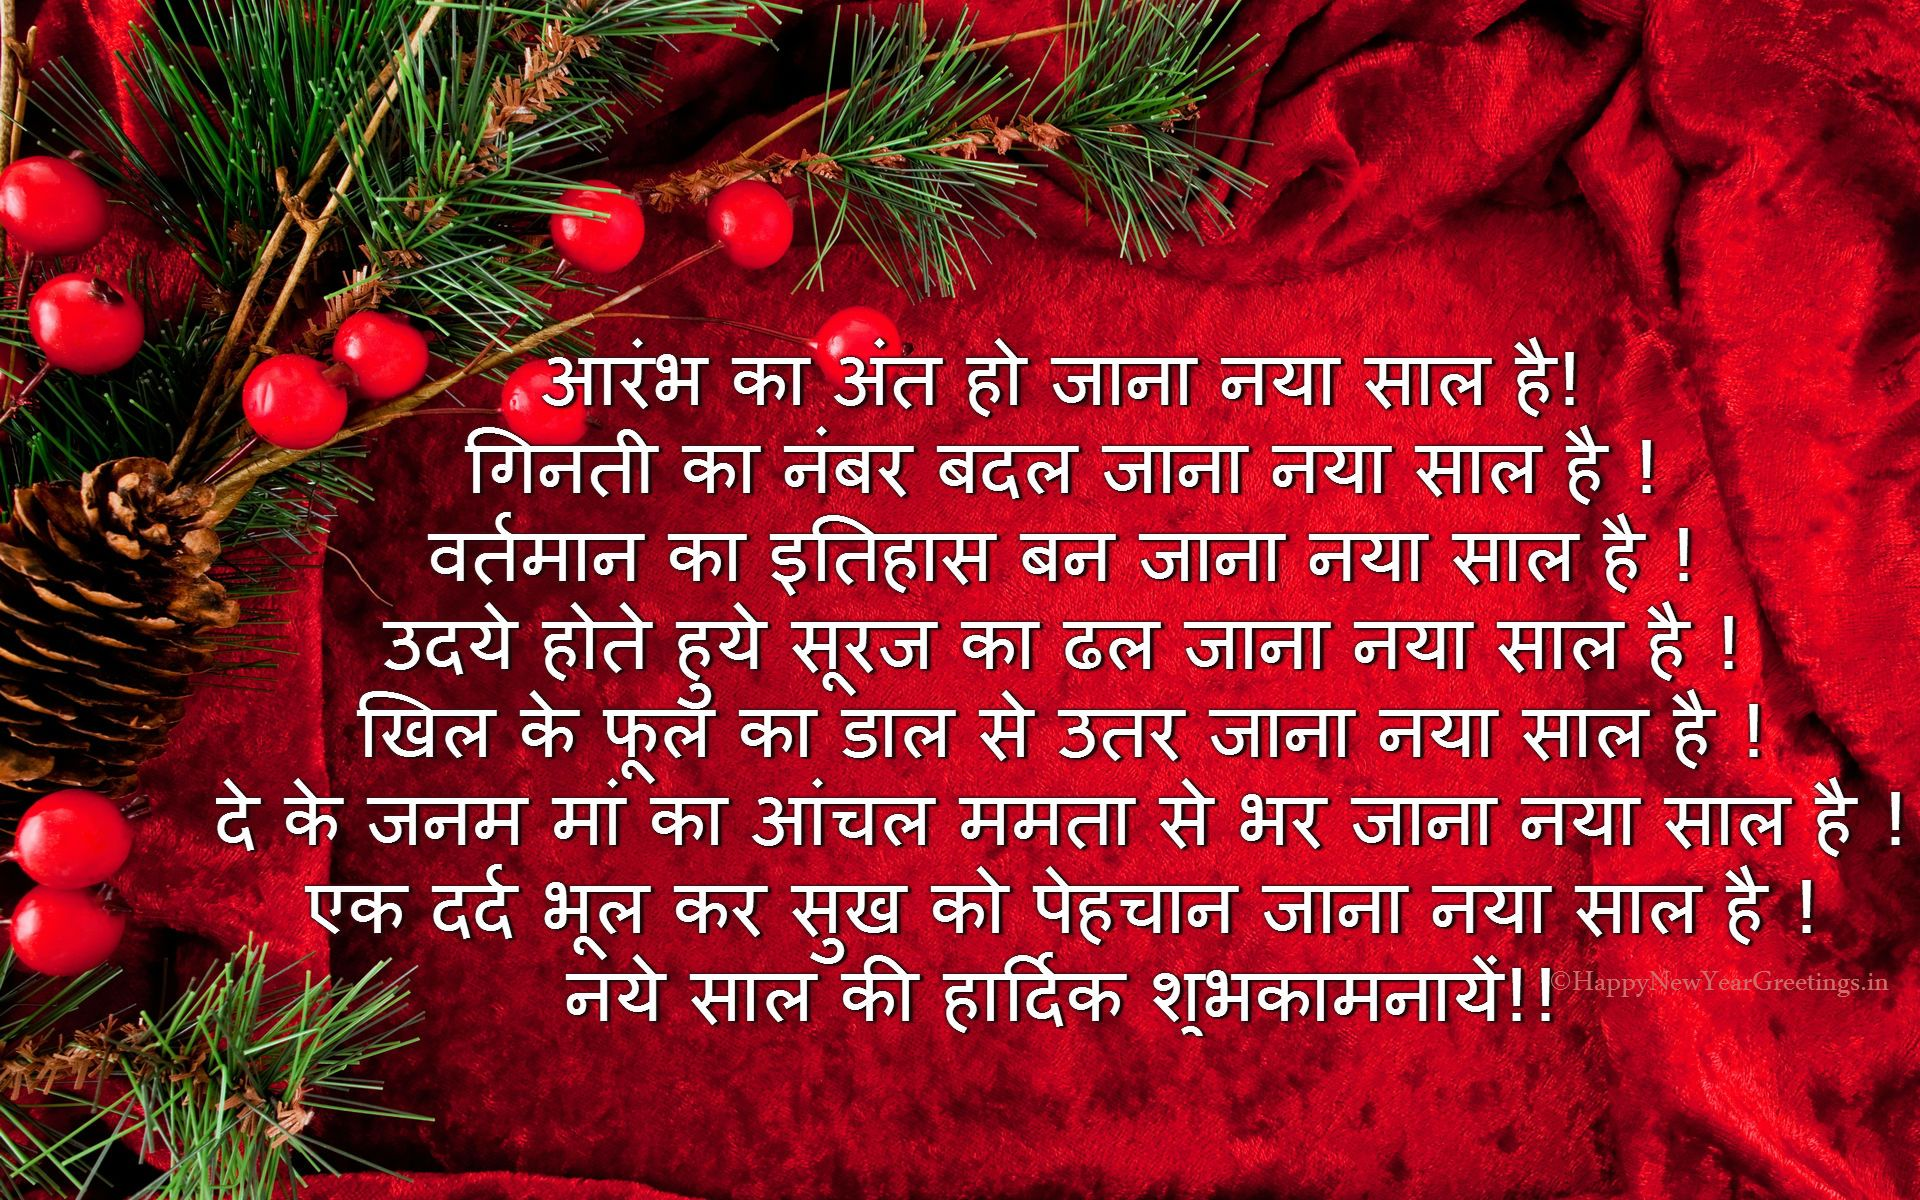 Happy New Year Poems For Hindi Happy New Year Quotes Quotes About New Year Happy New Year Photo